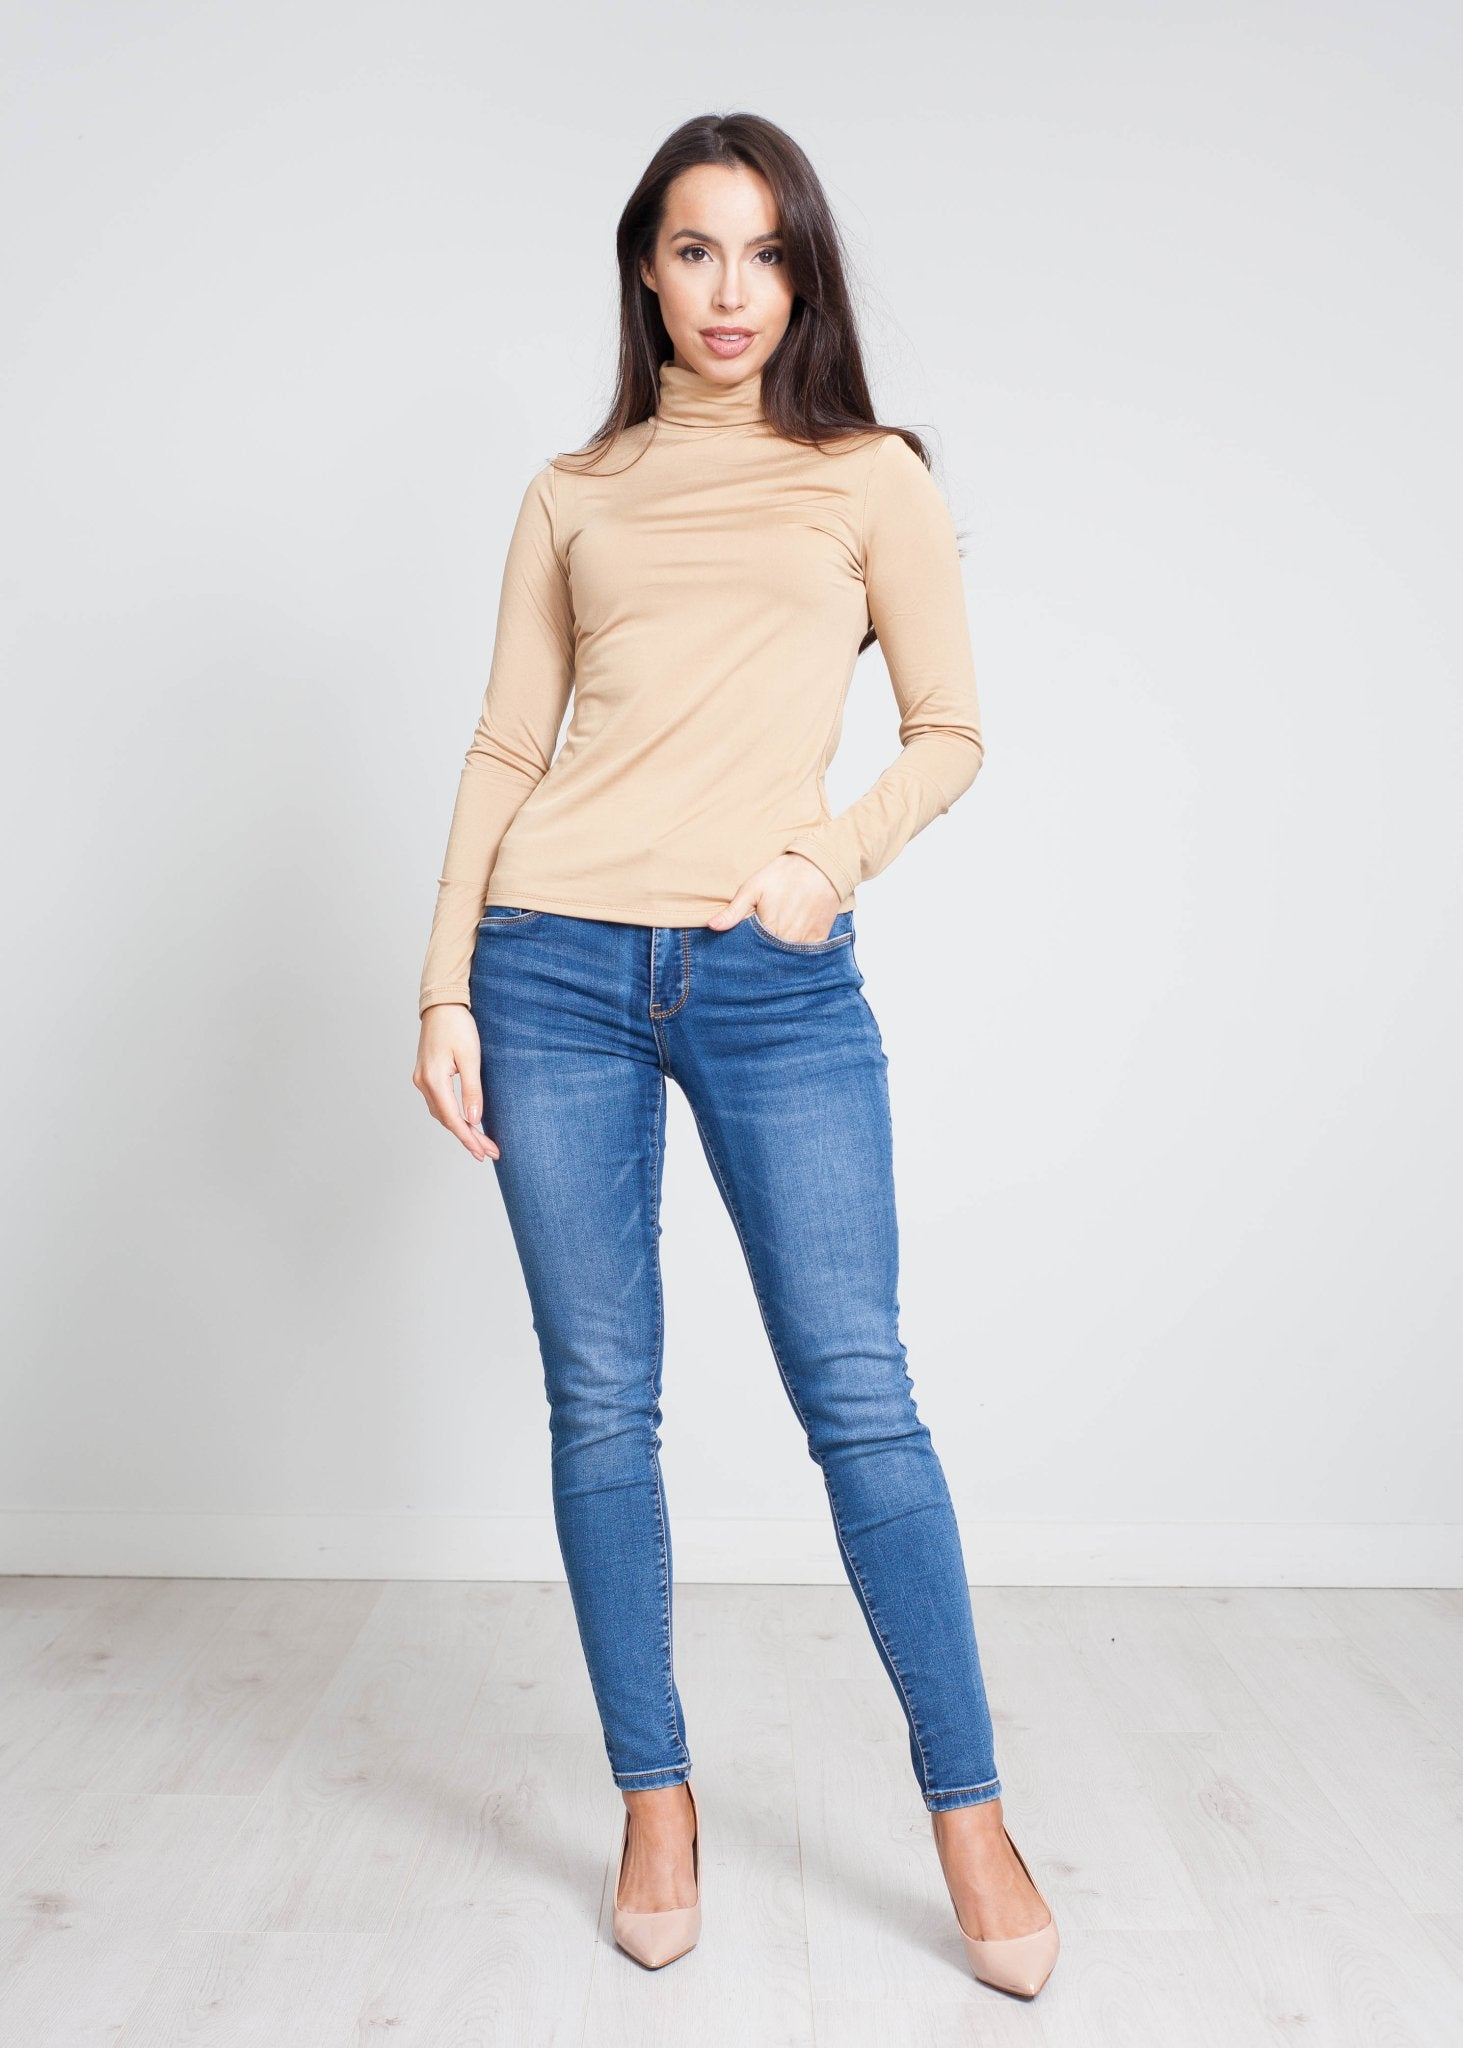 Nora Polo Neck Top In Camel - The Walk in Wardrobe